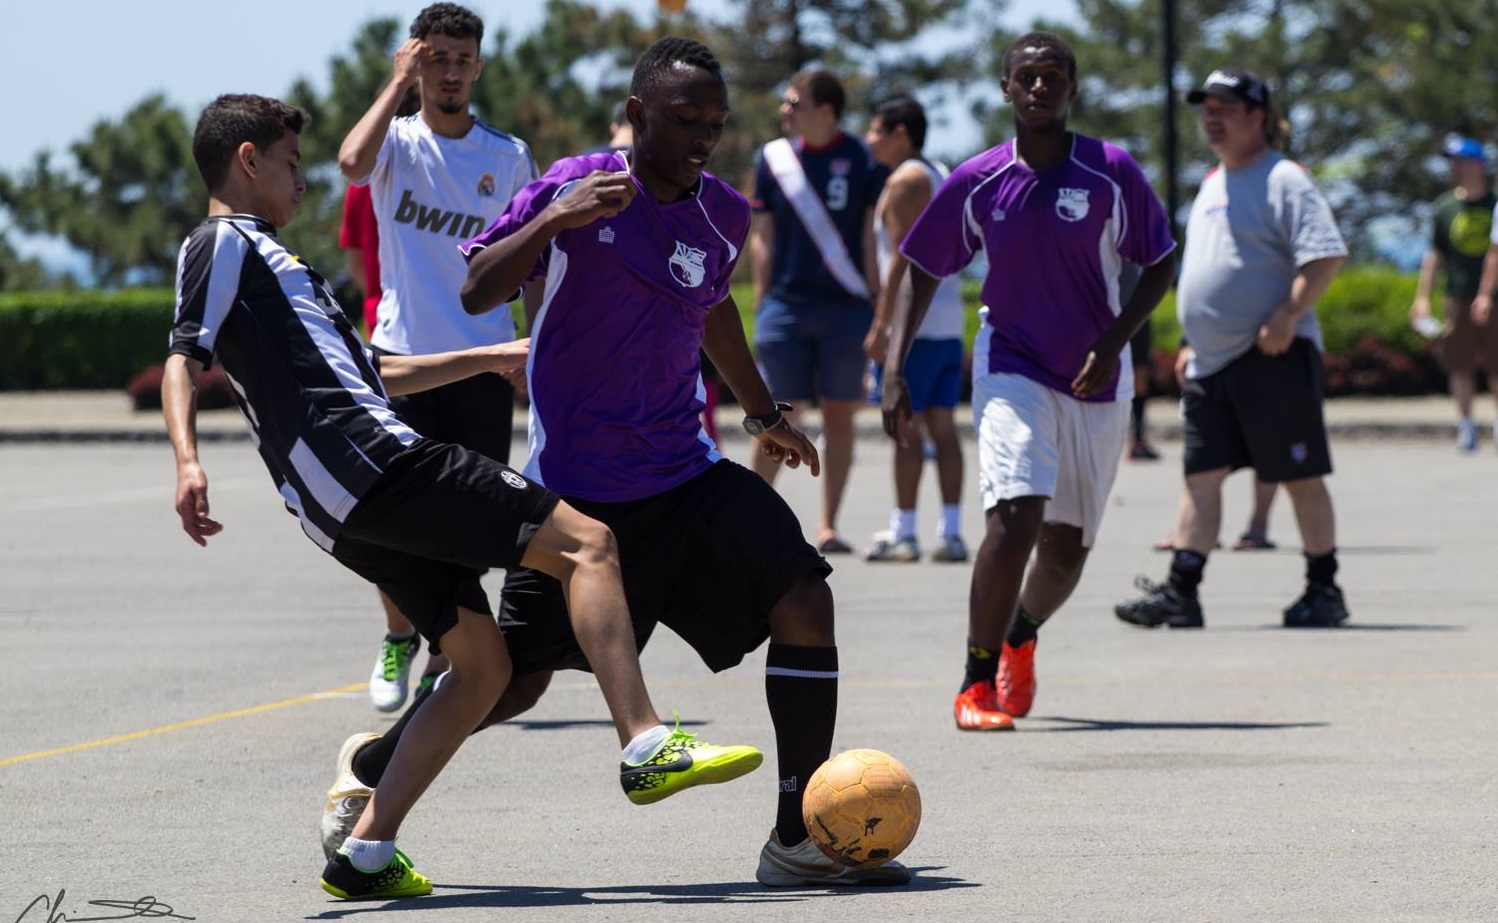 Image from the 2014 Street Soccer Tournament, via Buffalo Soccer Council.